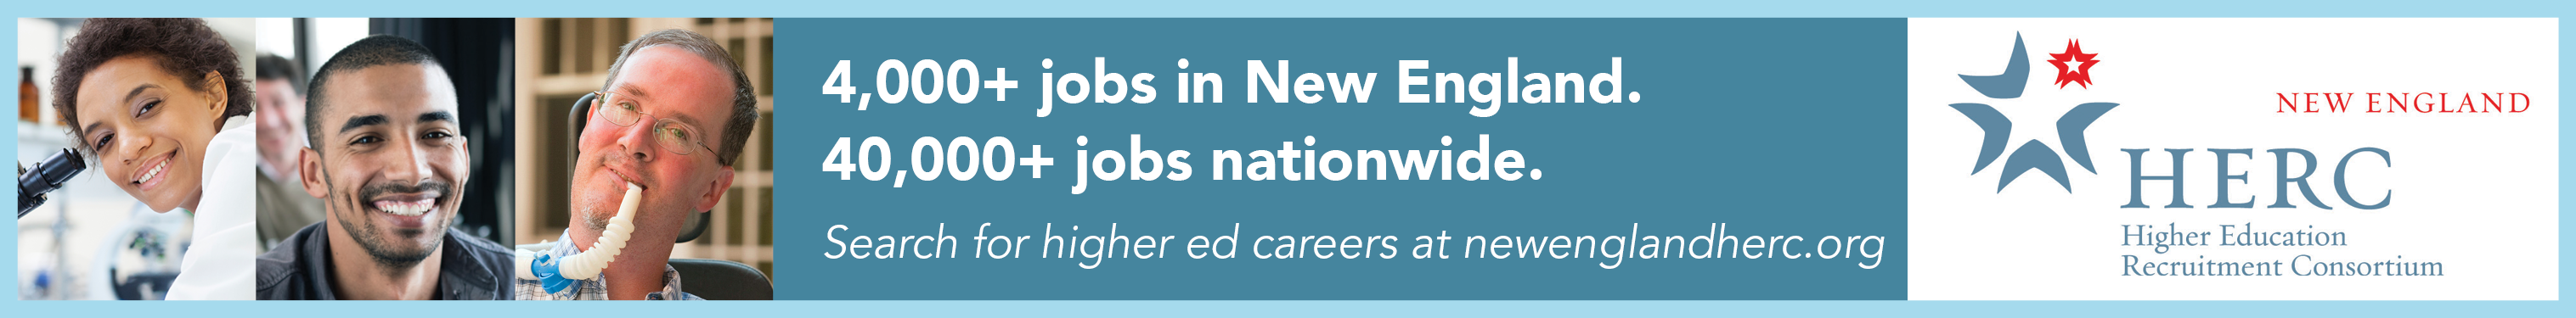 Search for higher ed careers at New England Herc